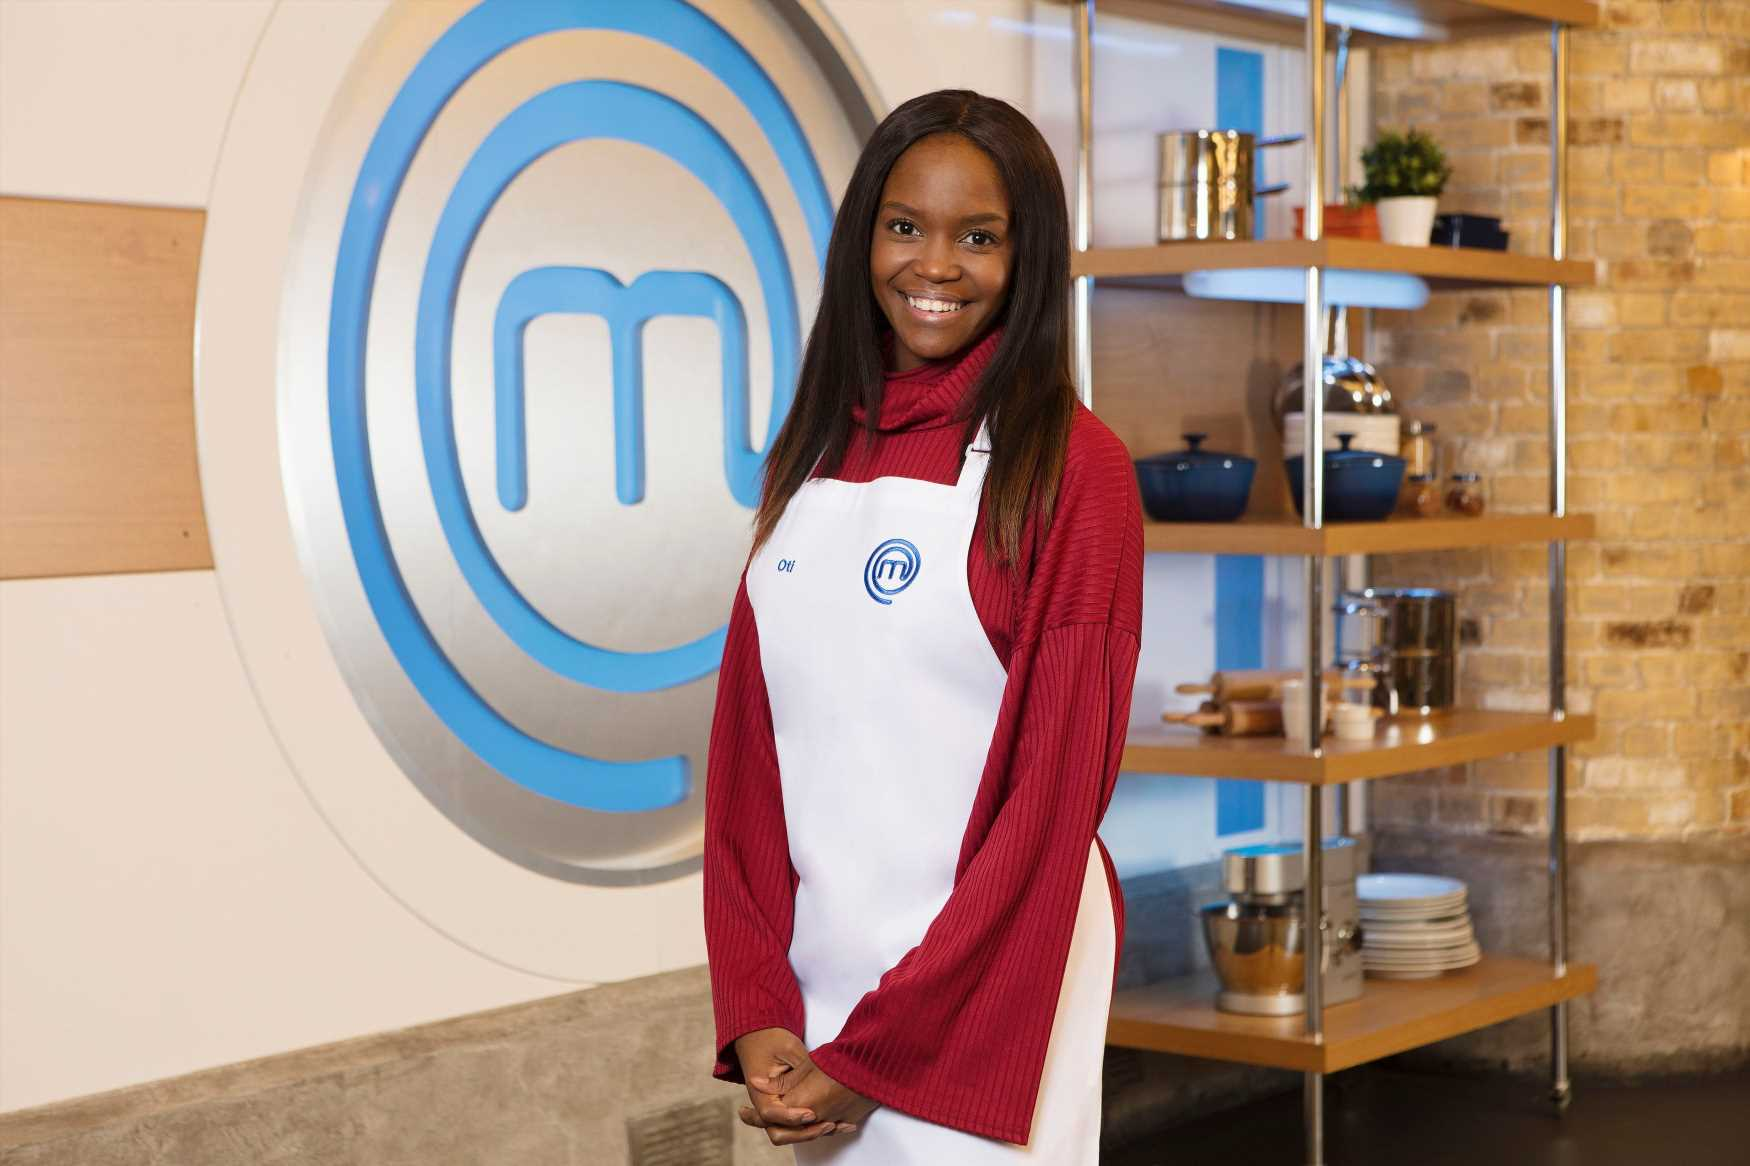 Celebrity MasterChef is on BBC One at 9pm tonight – here's who's favourite to win